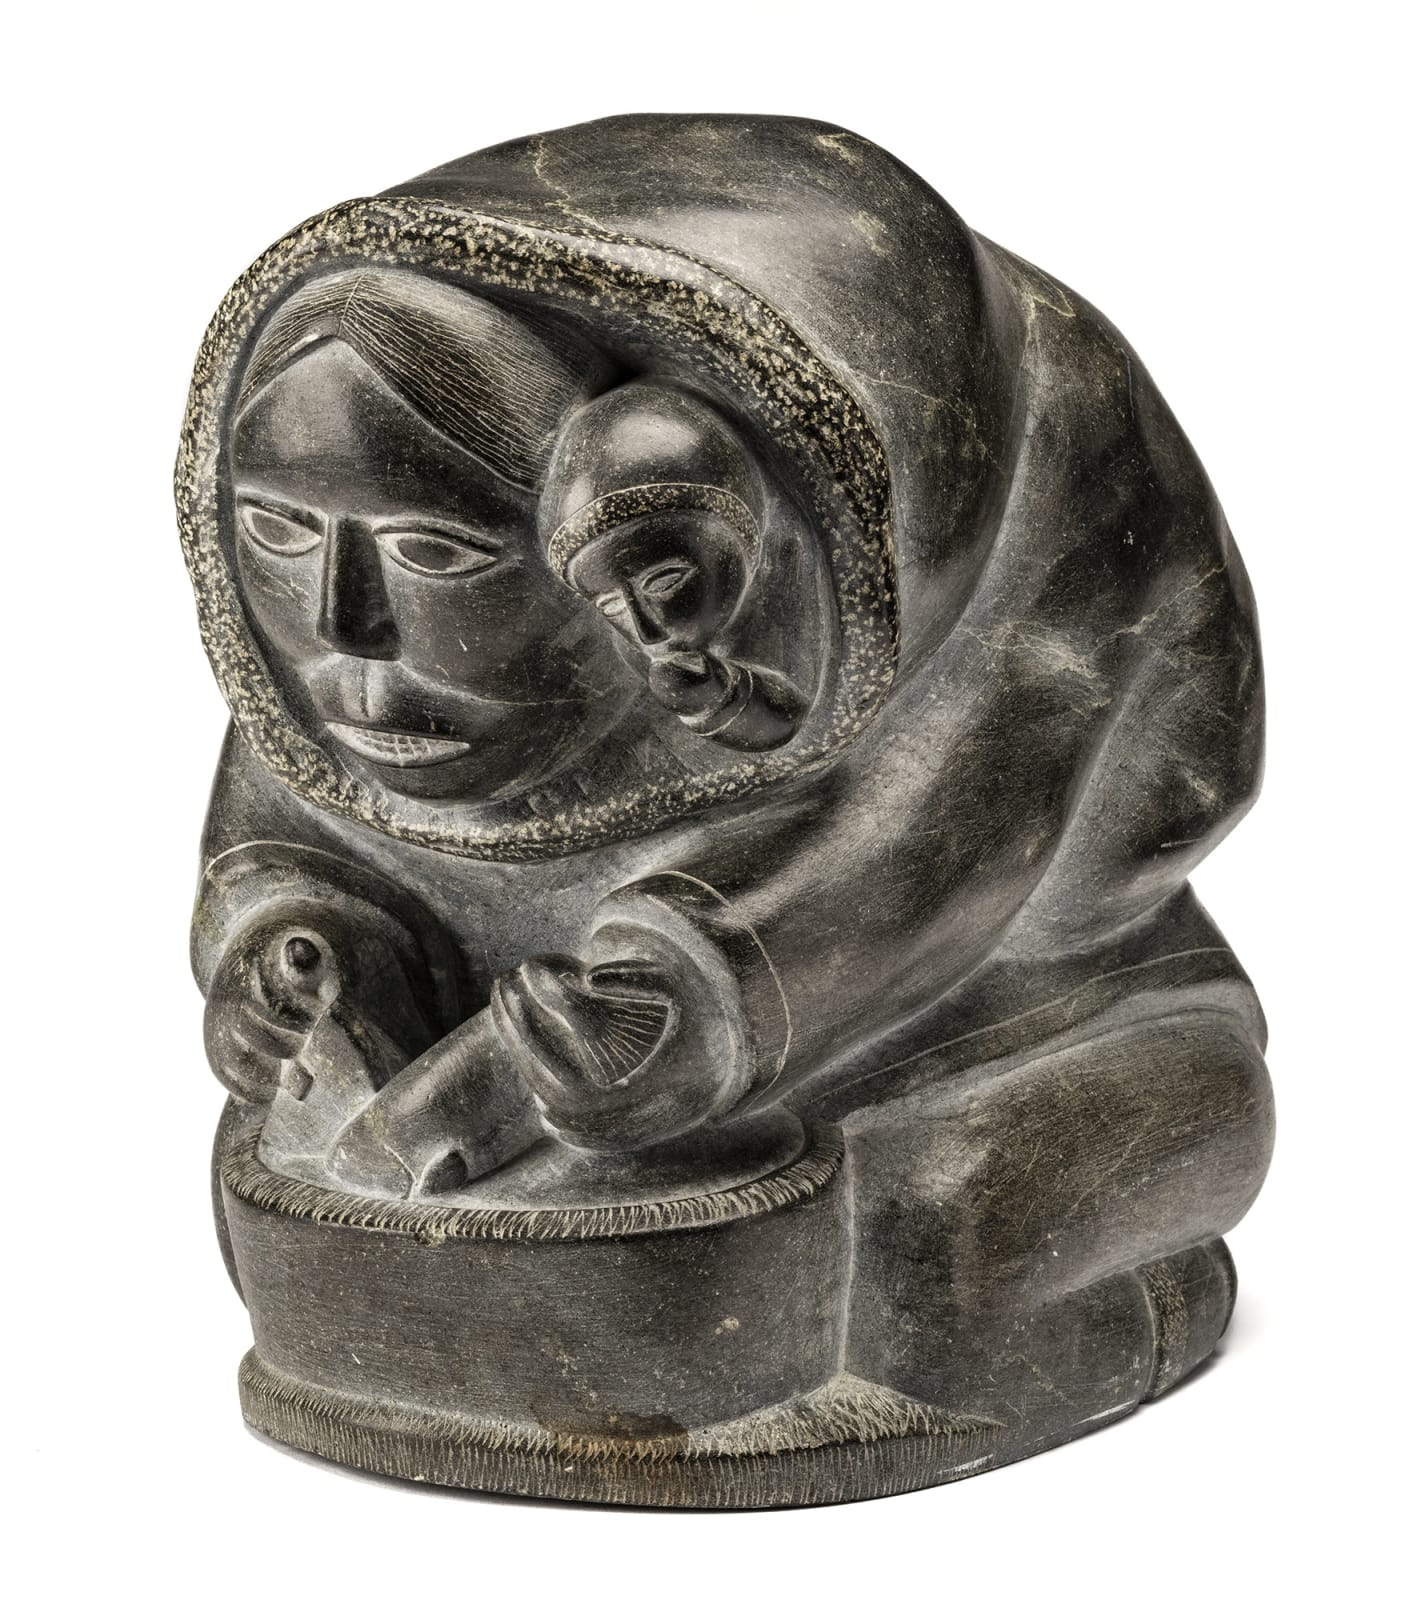 Lot 100 SAMSON NASTAPOKA (1931-) INUKJUAK (PORT HARRISON) Mother and Child, Cutting Up a Fish, c. 1960 stone, 11.5 x 8 x 11 in (29.2 x 20.3 x 27.9 cm) Estimate: $4,000⁠⁠⁠— $6,000 Price realized: $4,320